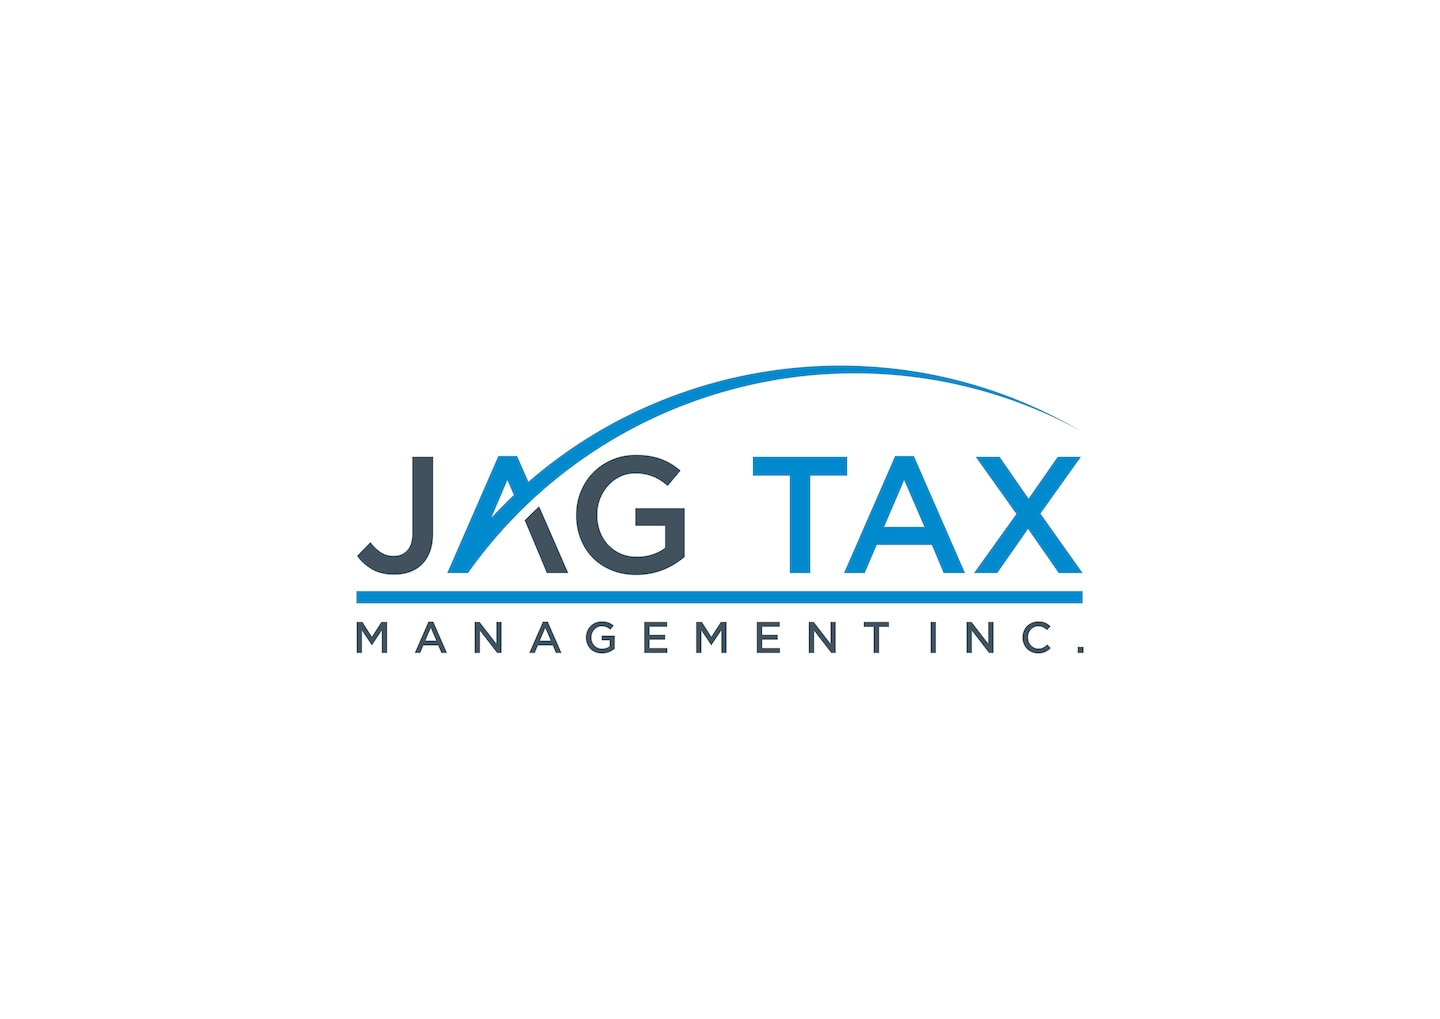 Jag Tax Management